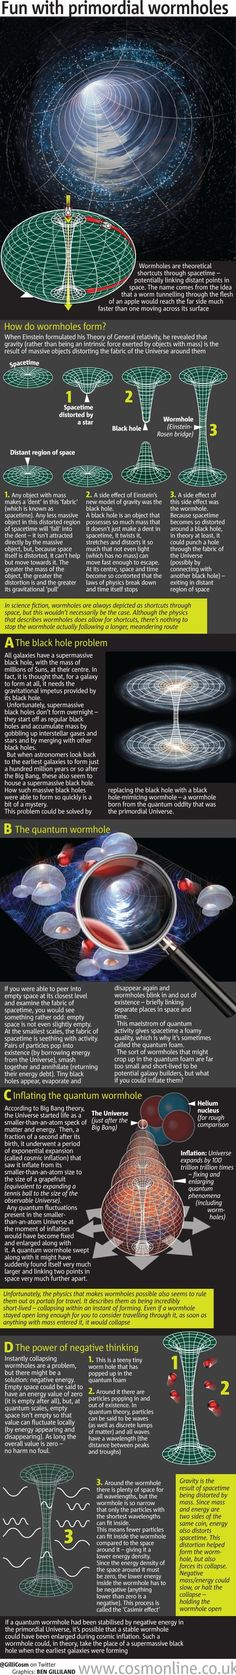 Black hole? Or wormhole in disguise? | CosmOnline: